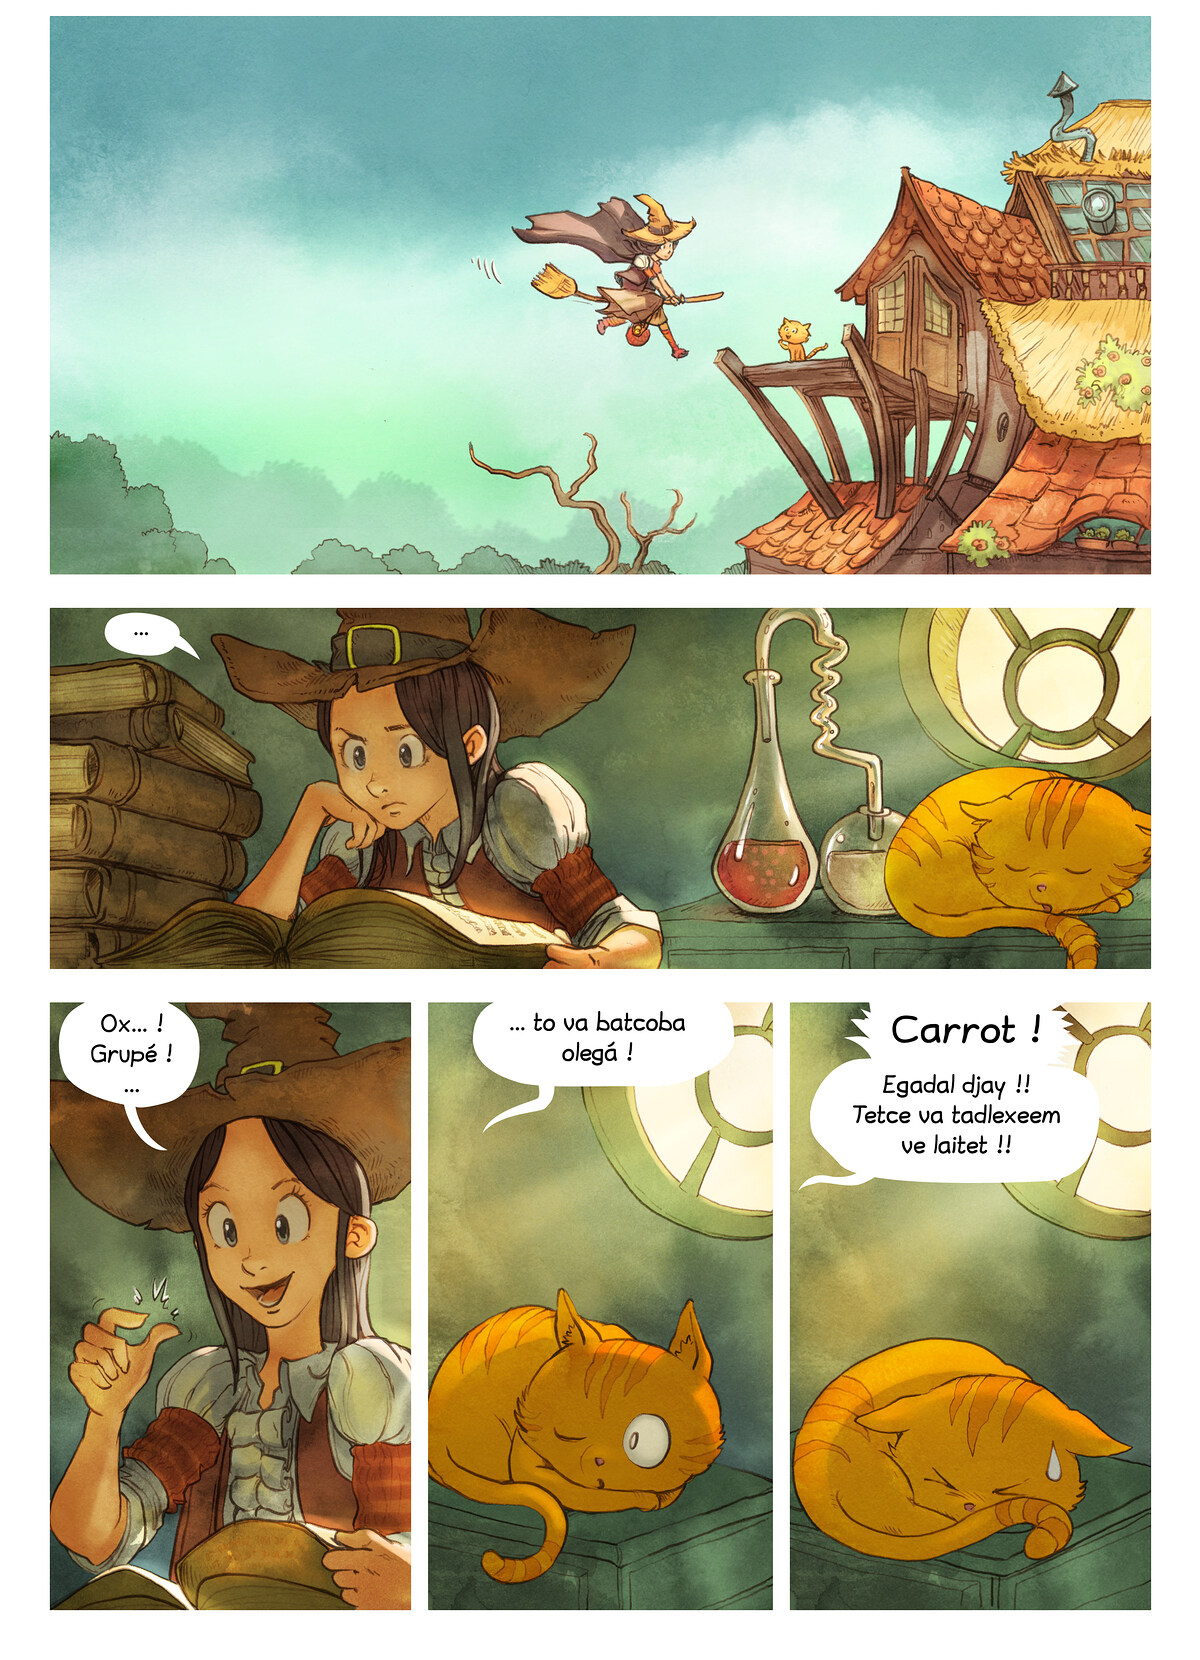 A webcomic page of Pepper&Carrot, episode 3 [kt], page 4